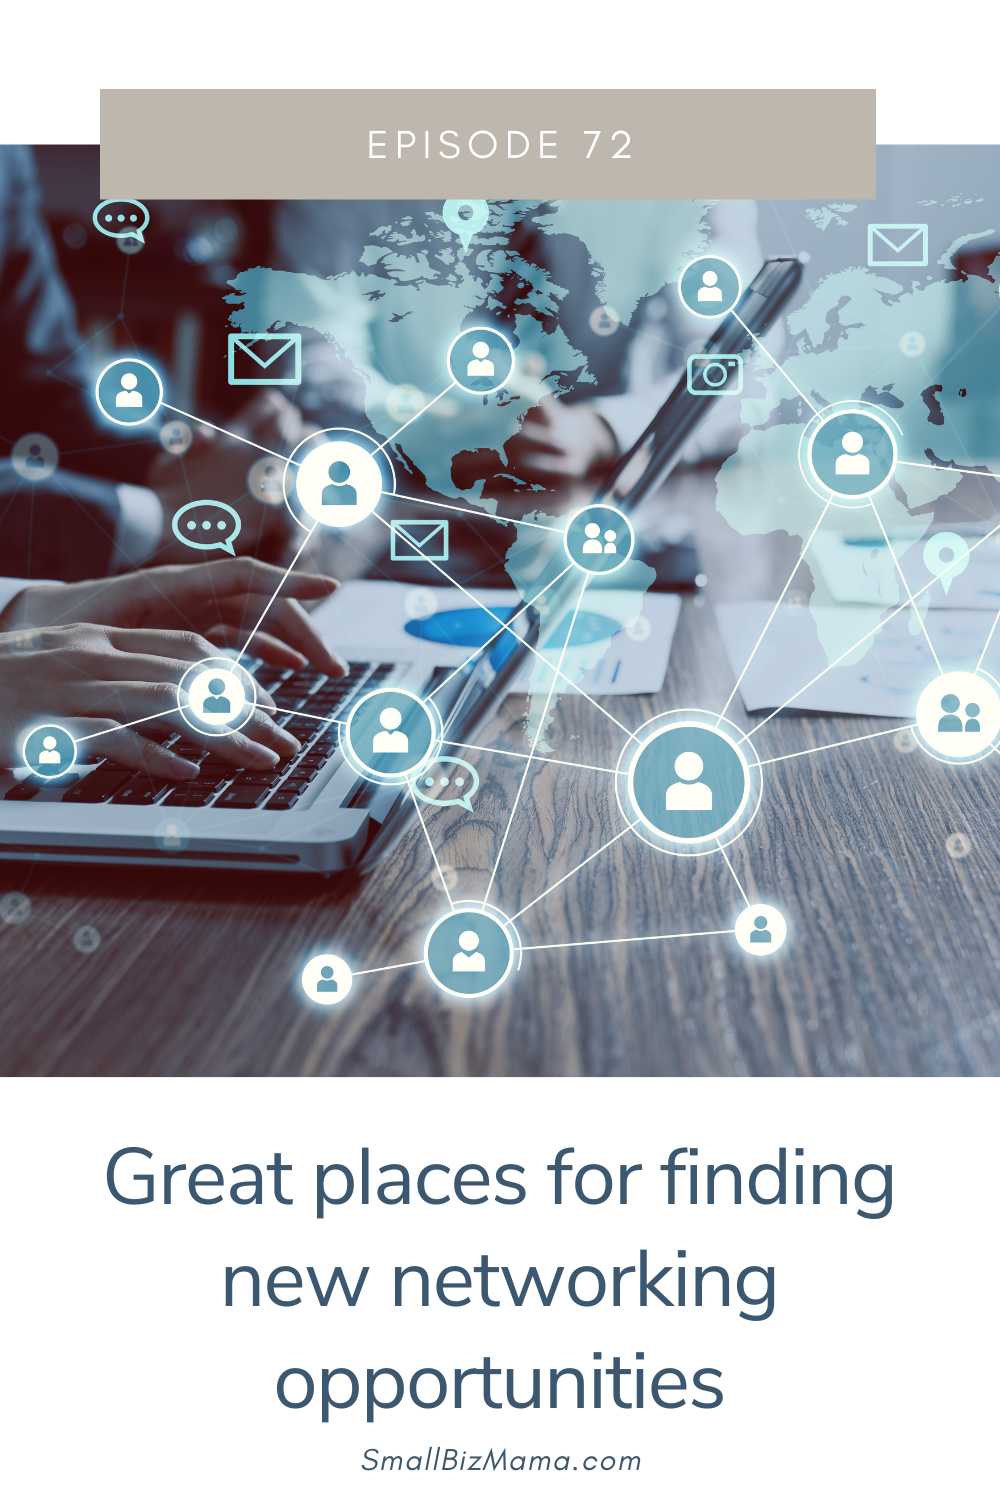 Great places for finding new networking opportunities